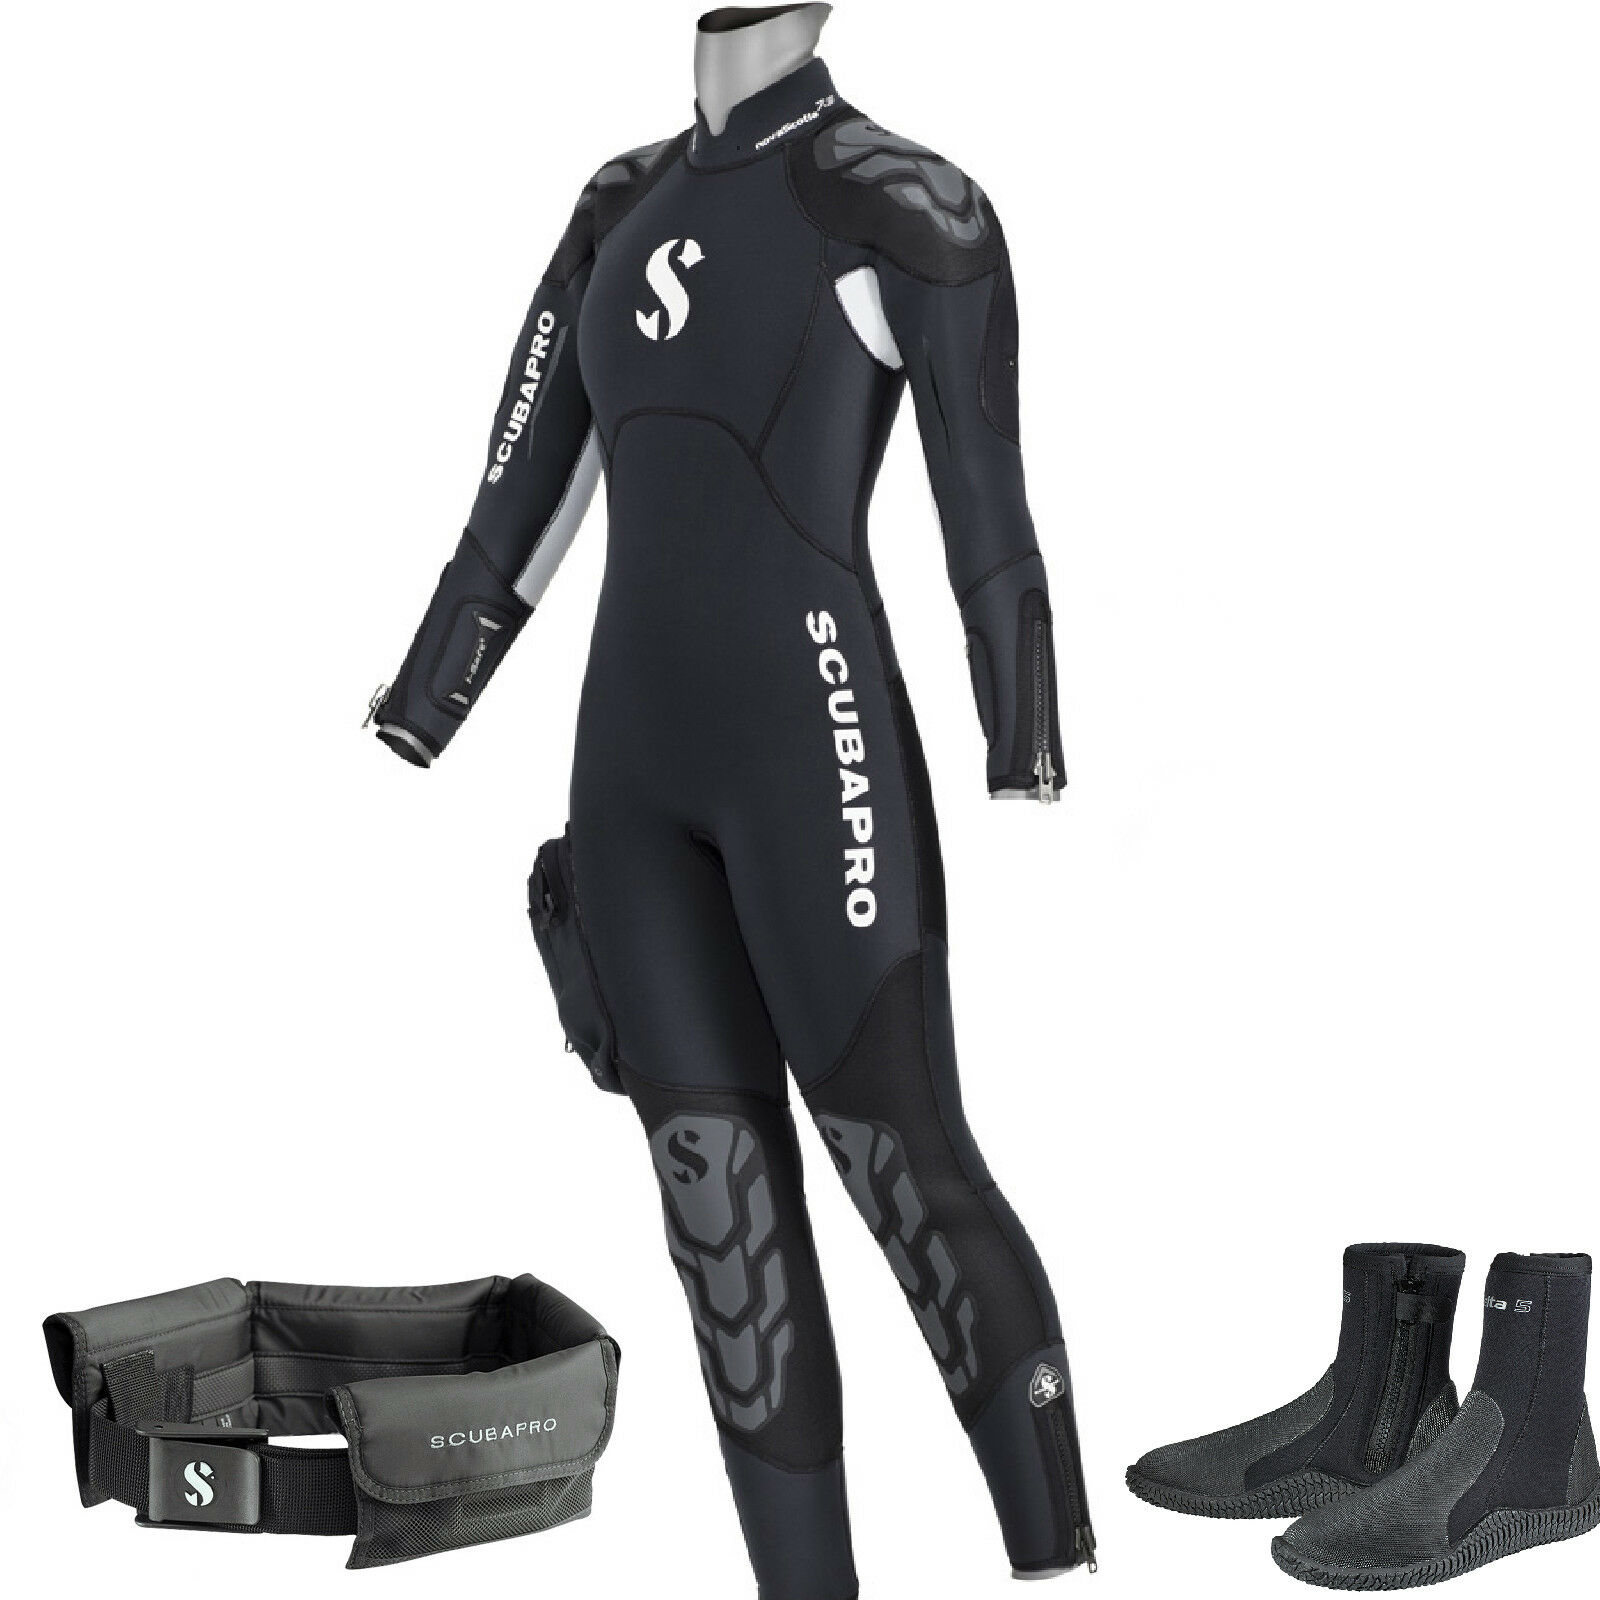 LO3 25 SEMYDRY SUIT SCUBAPRO NOVASCOTIA LADYmm7,5 AND HOOD size S+BOOT+BELT